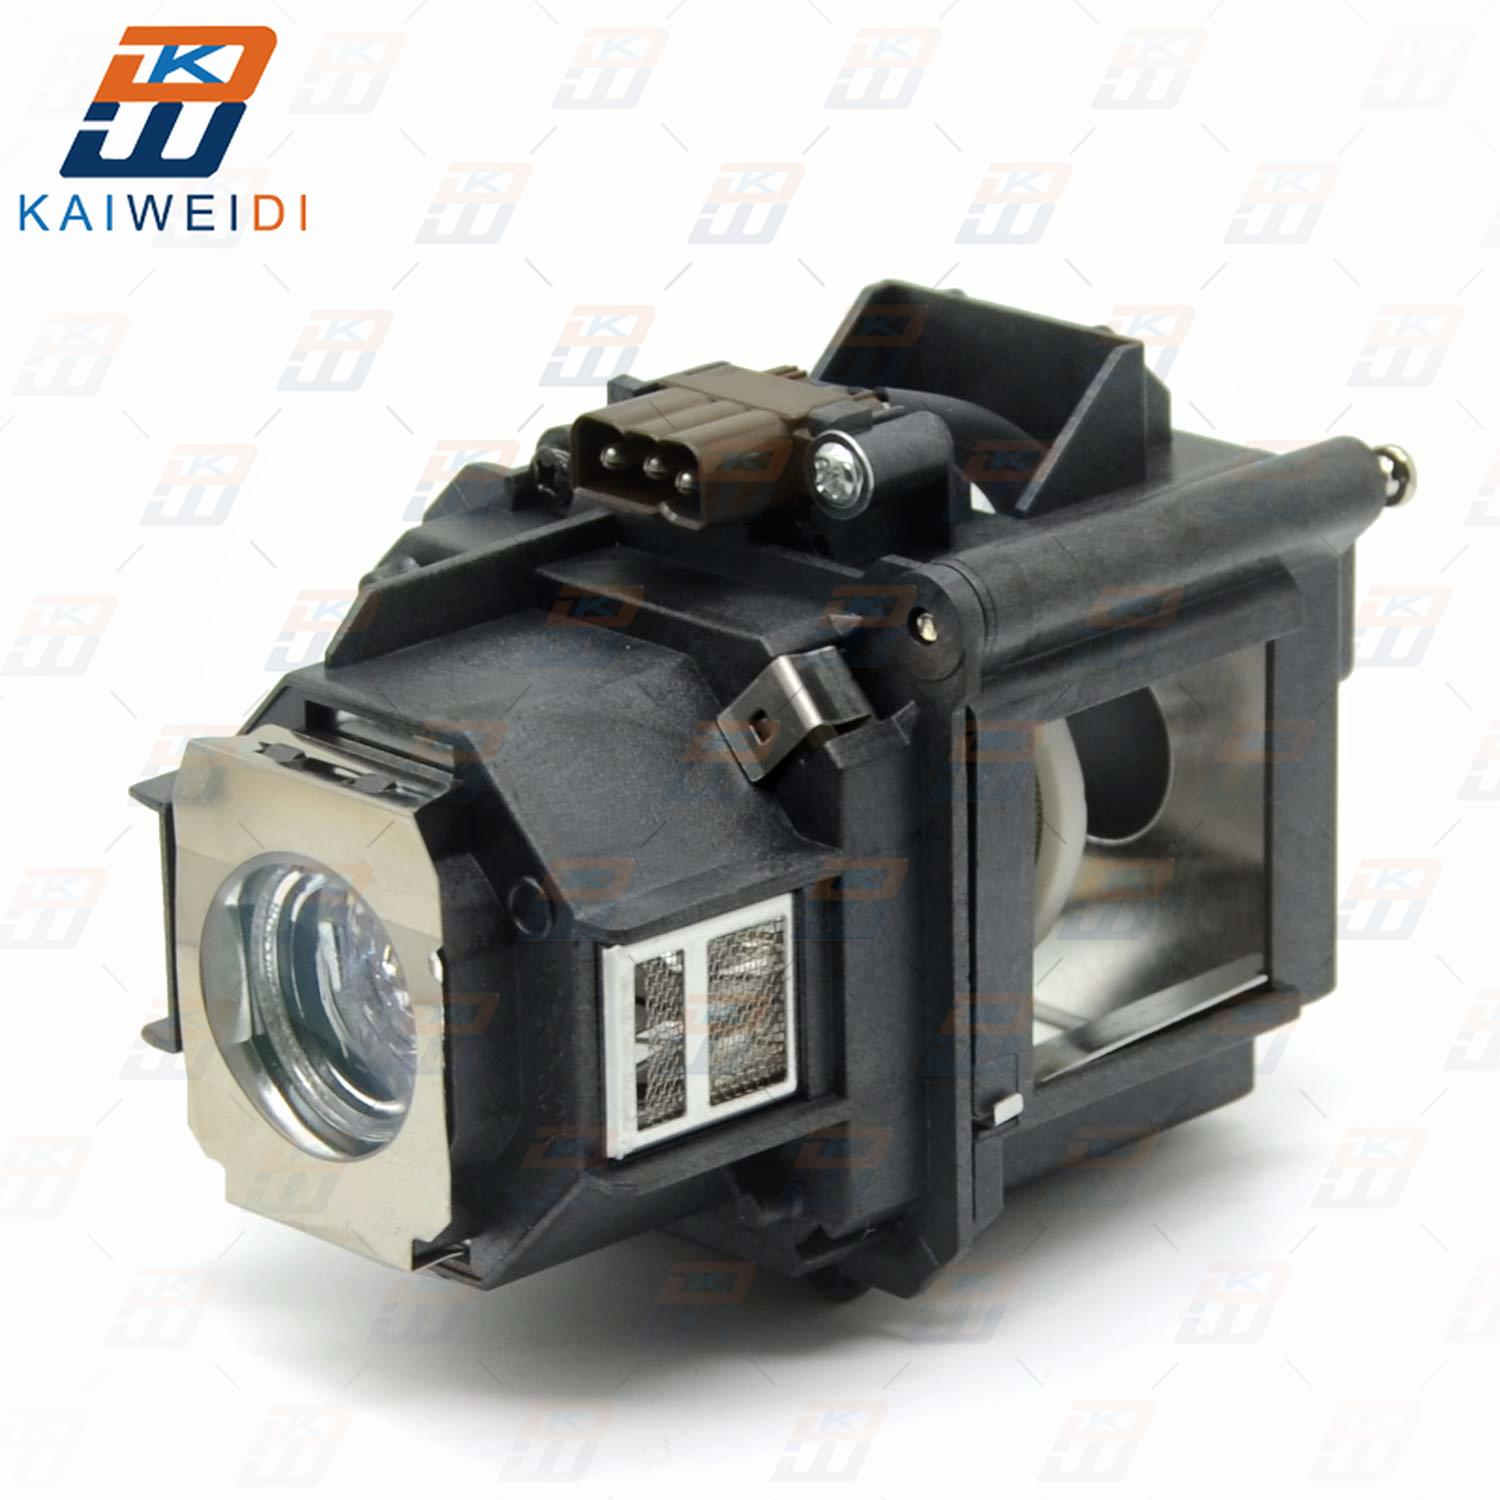 For ELPLP46  V13H010L46 Projector Lamp For EPSON EB-500KG EB-G5200 EB-G5200W EB-G5200WNL EB-G5250WNL G5300 G5300NL G5350 G5350NL